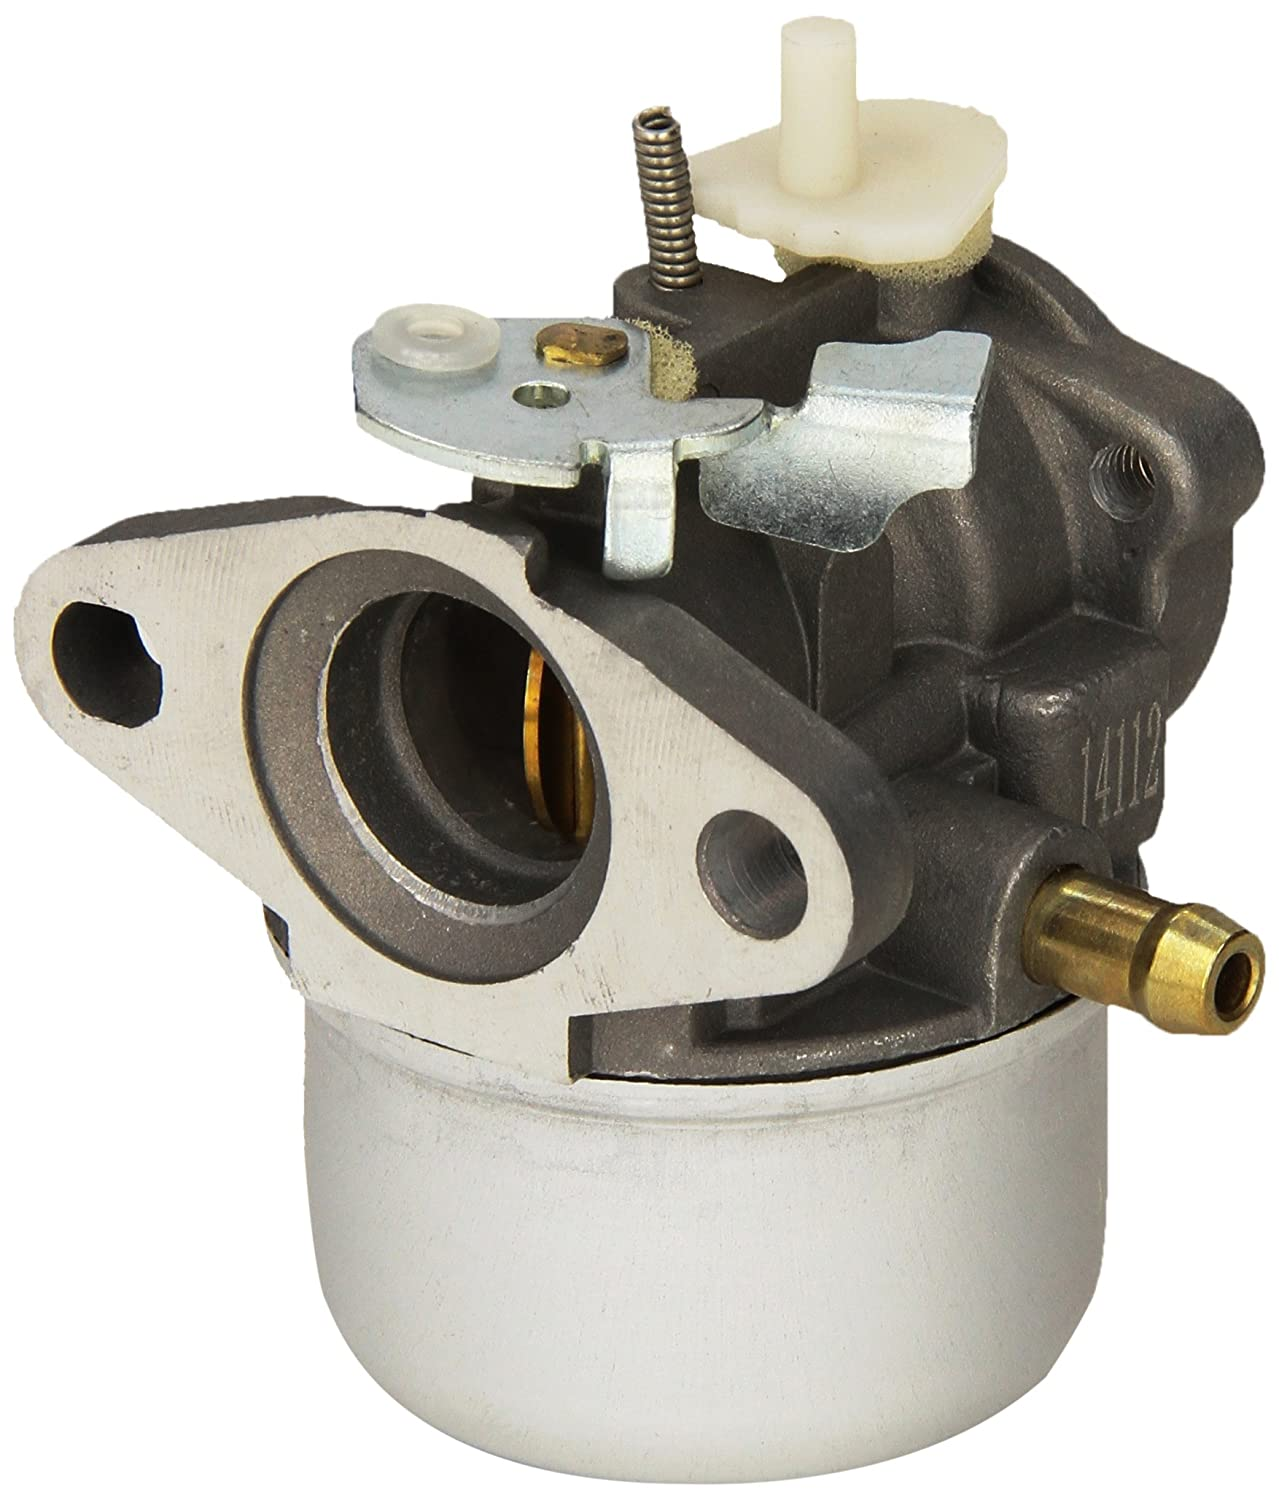 Amazon.com : MaxPower 14112 Carburetor Replaces Briggs and ...